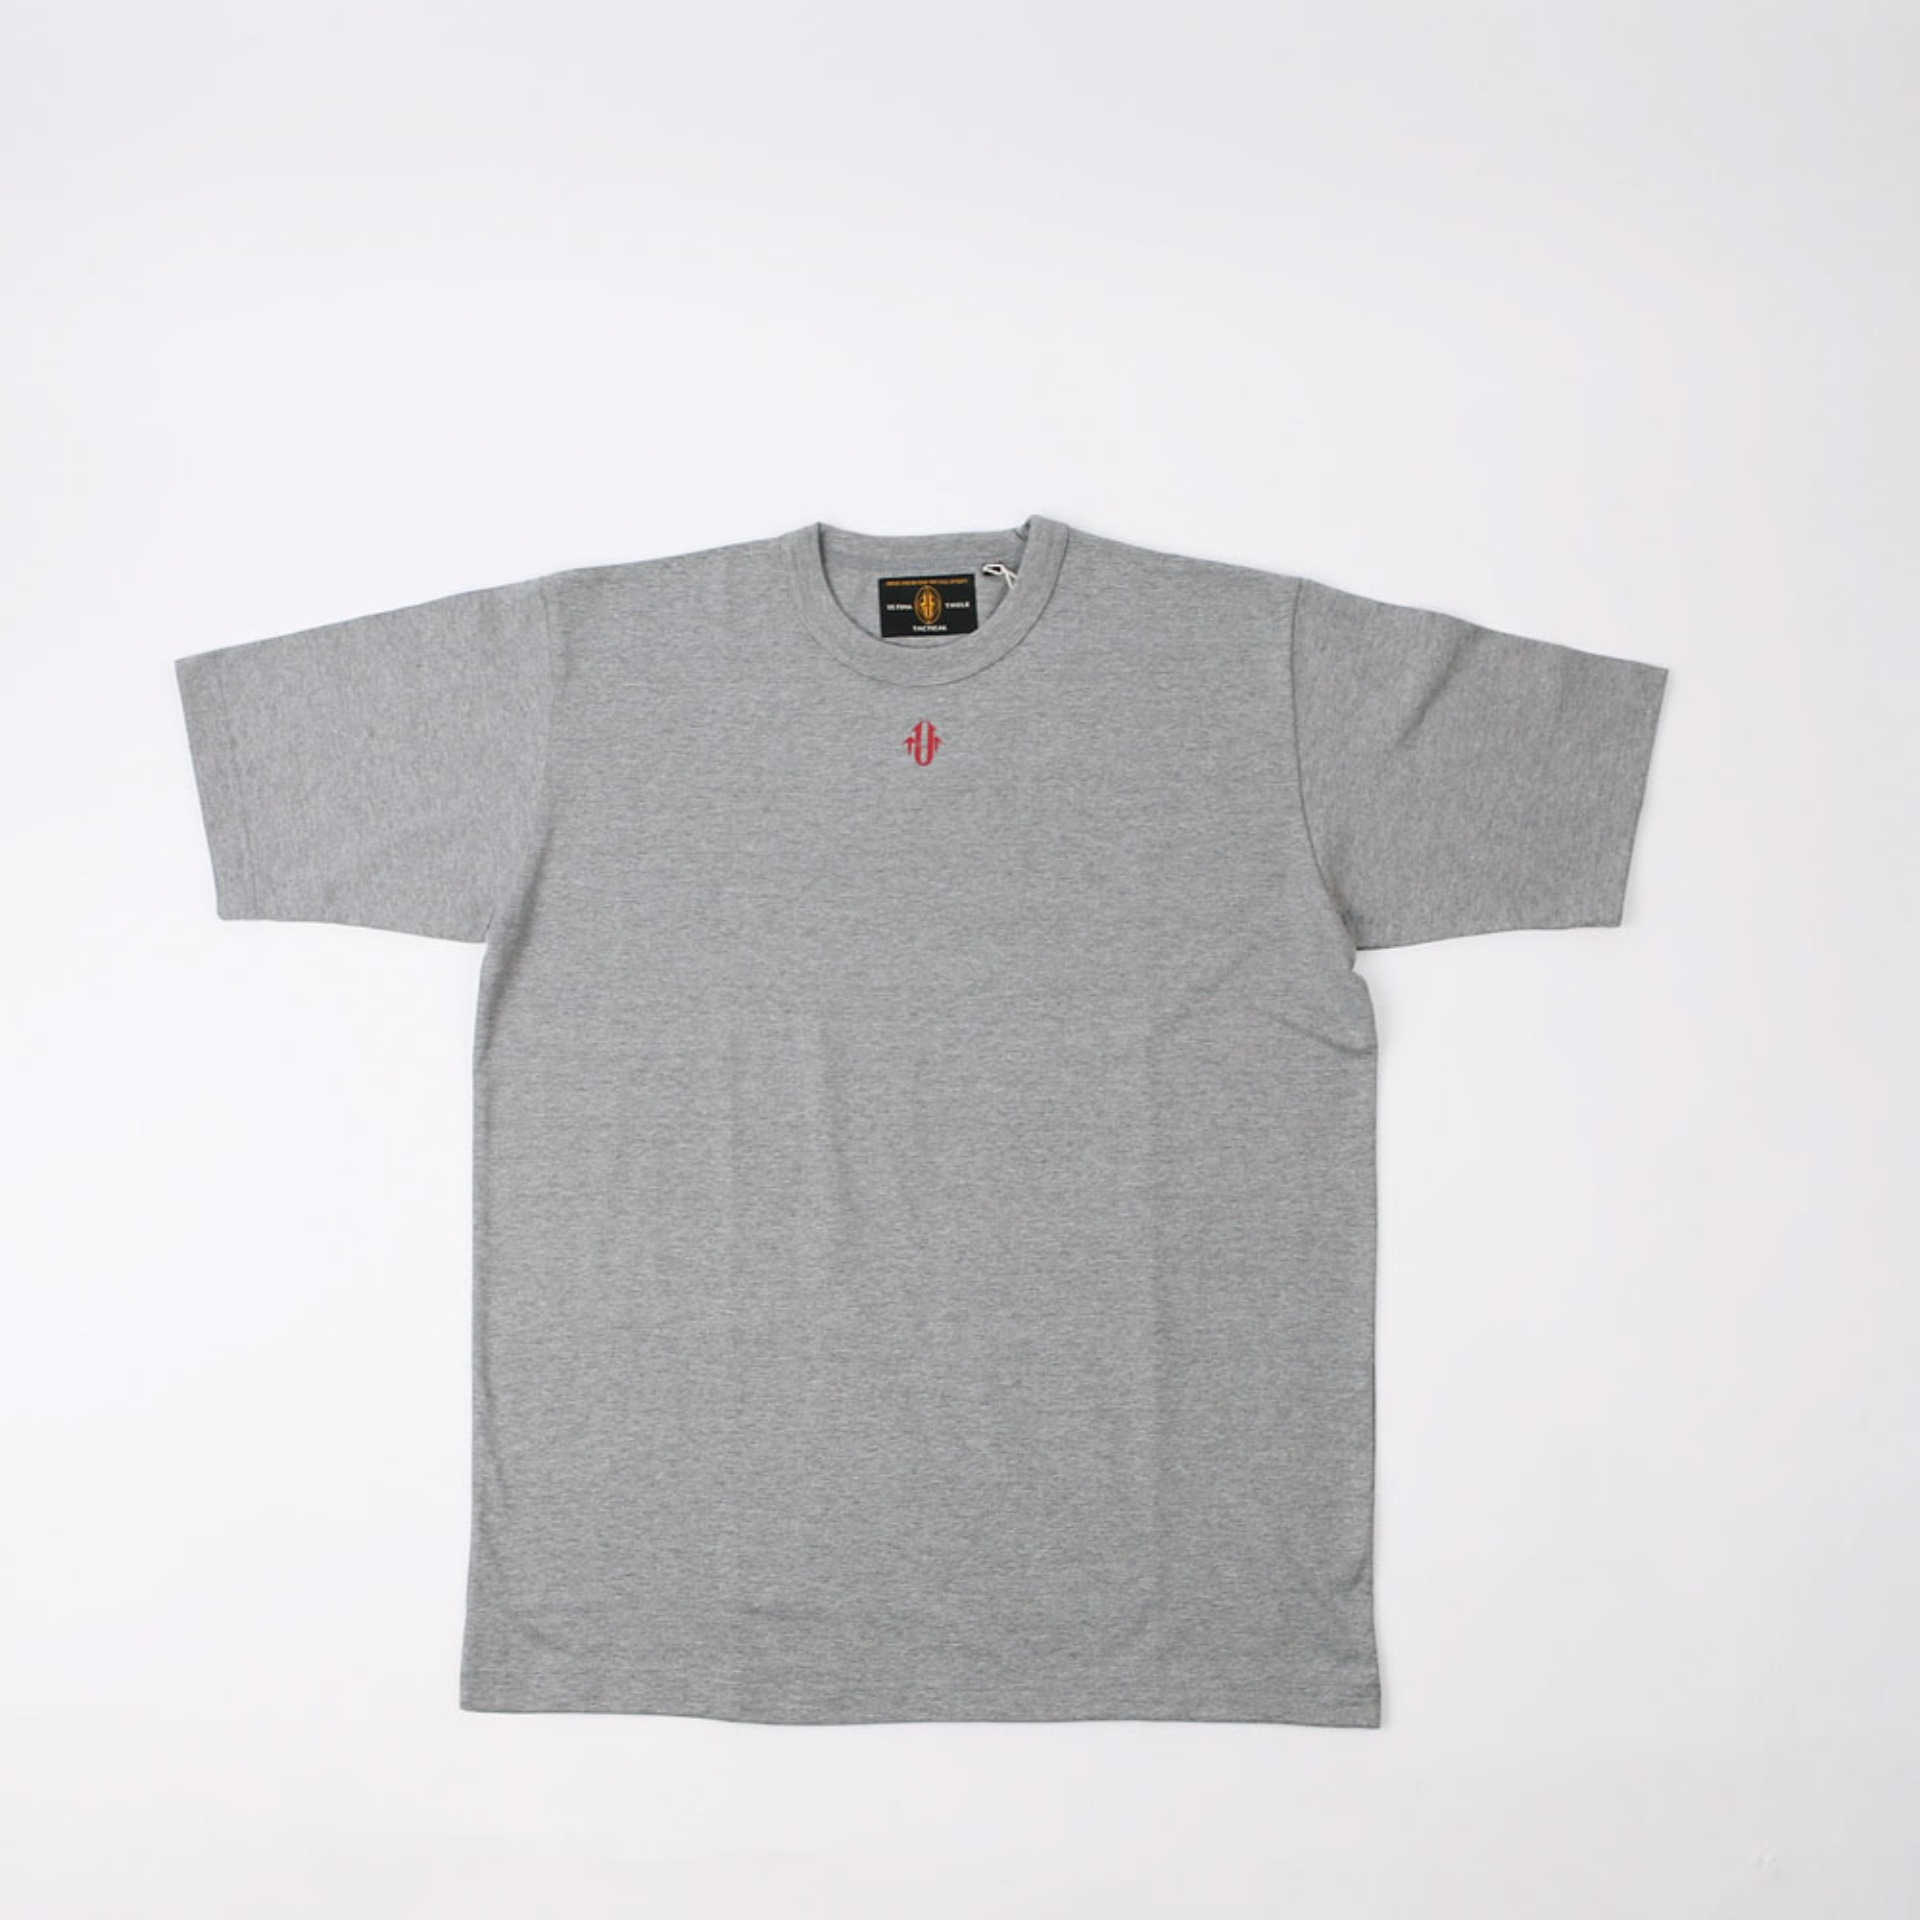 "[Ultima Thule]Equipment T-shirts""Ultima Thule Tactical""(Mix Gray)"